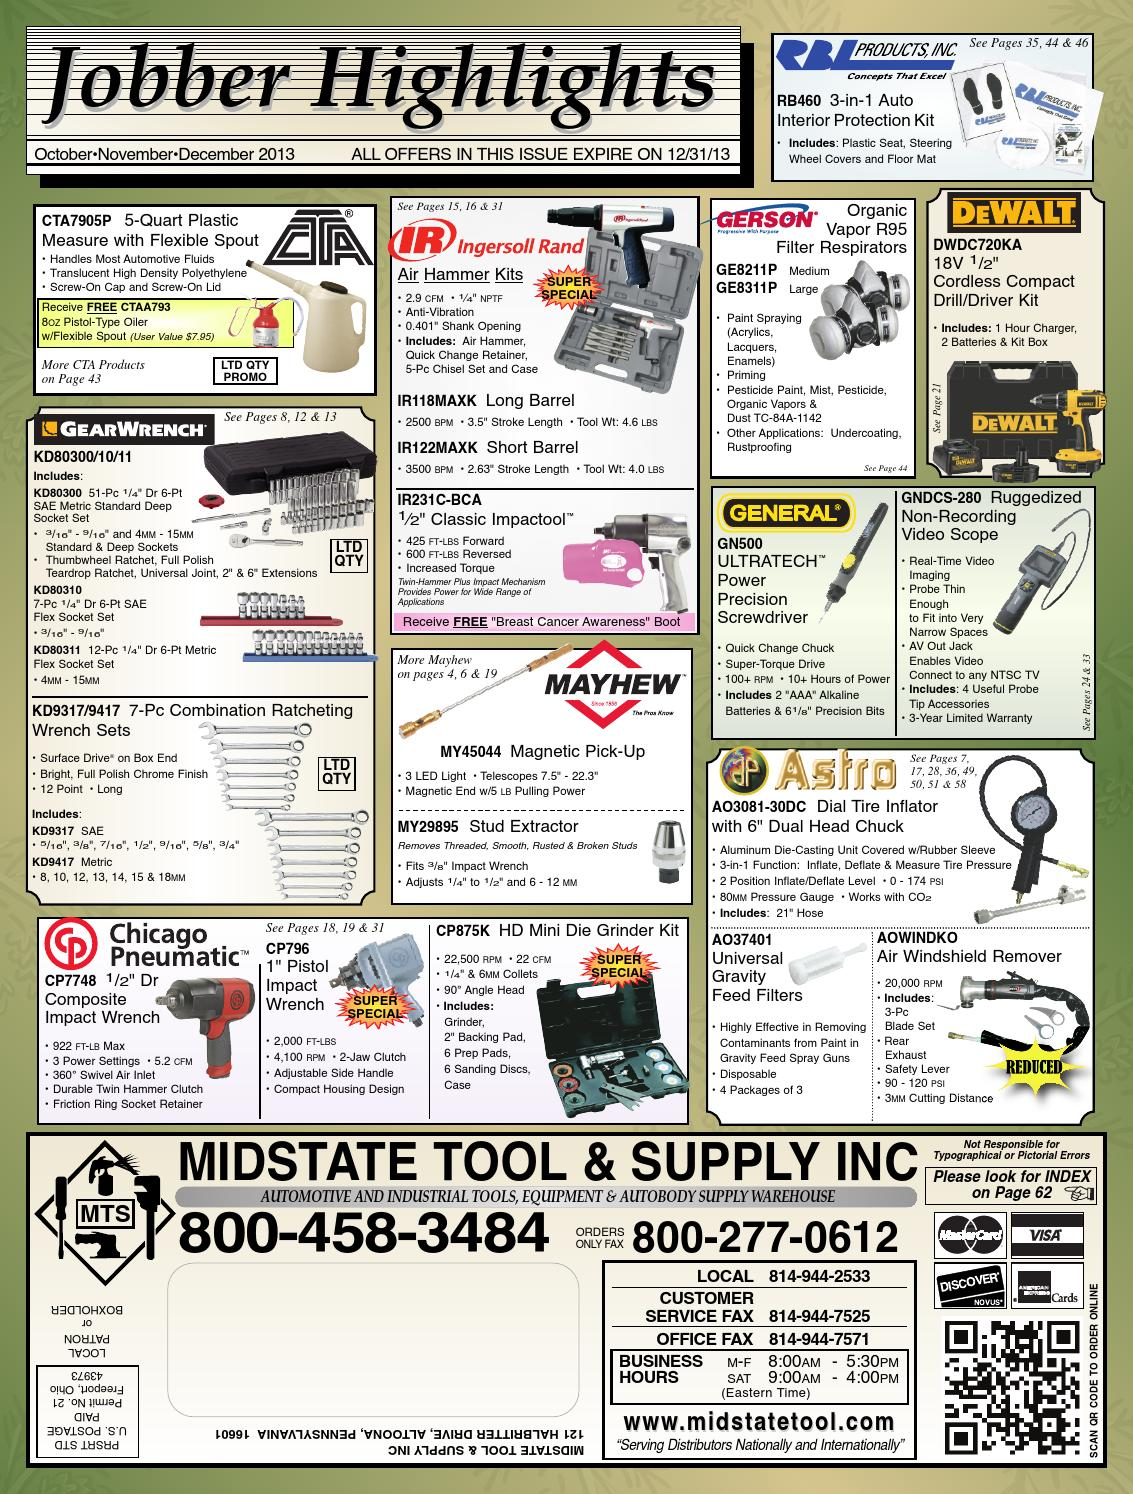 Octnovdec 2013 Jh By Joy Drake Issuu Retractable Extension Cord Reel W Tritap And Circuit Breaker Prolite